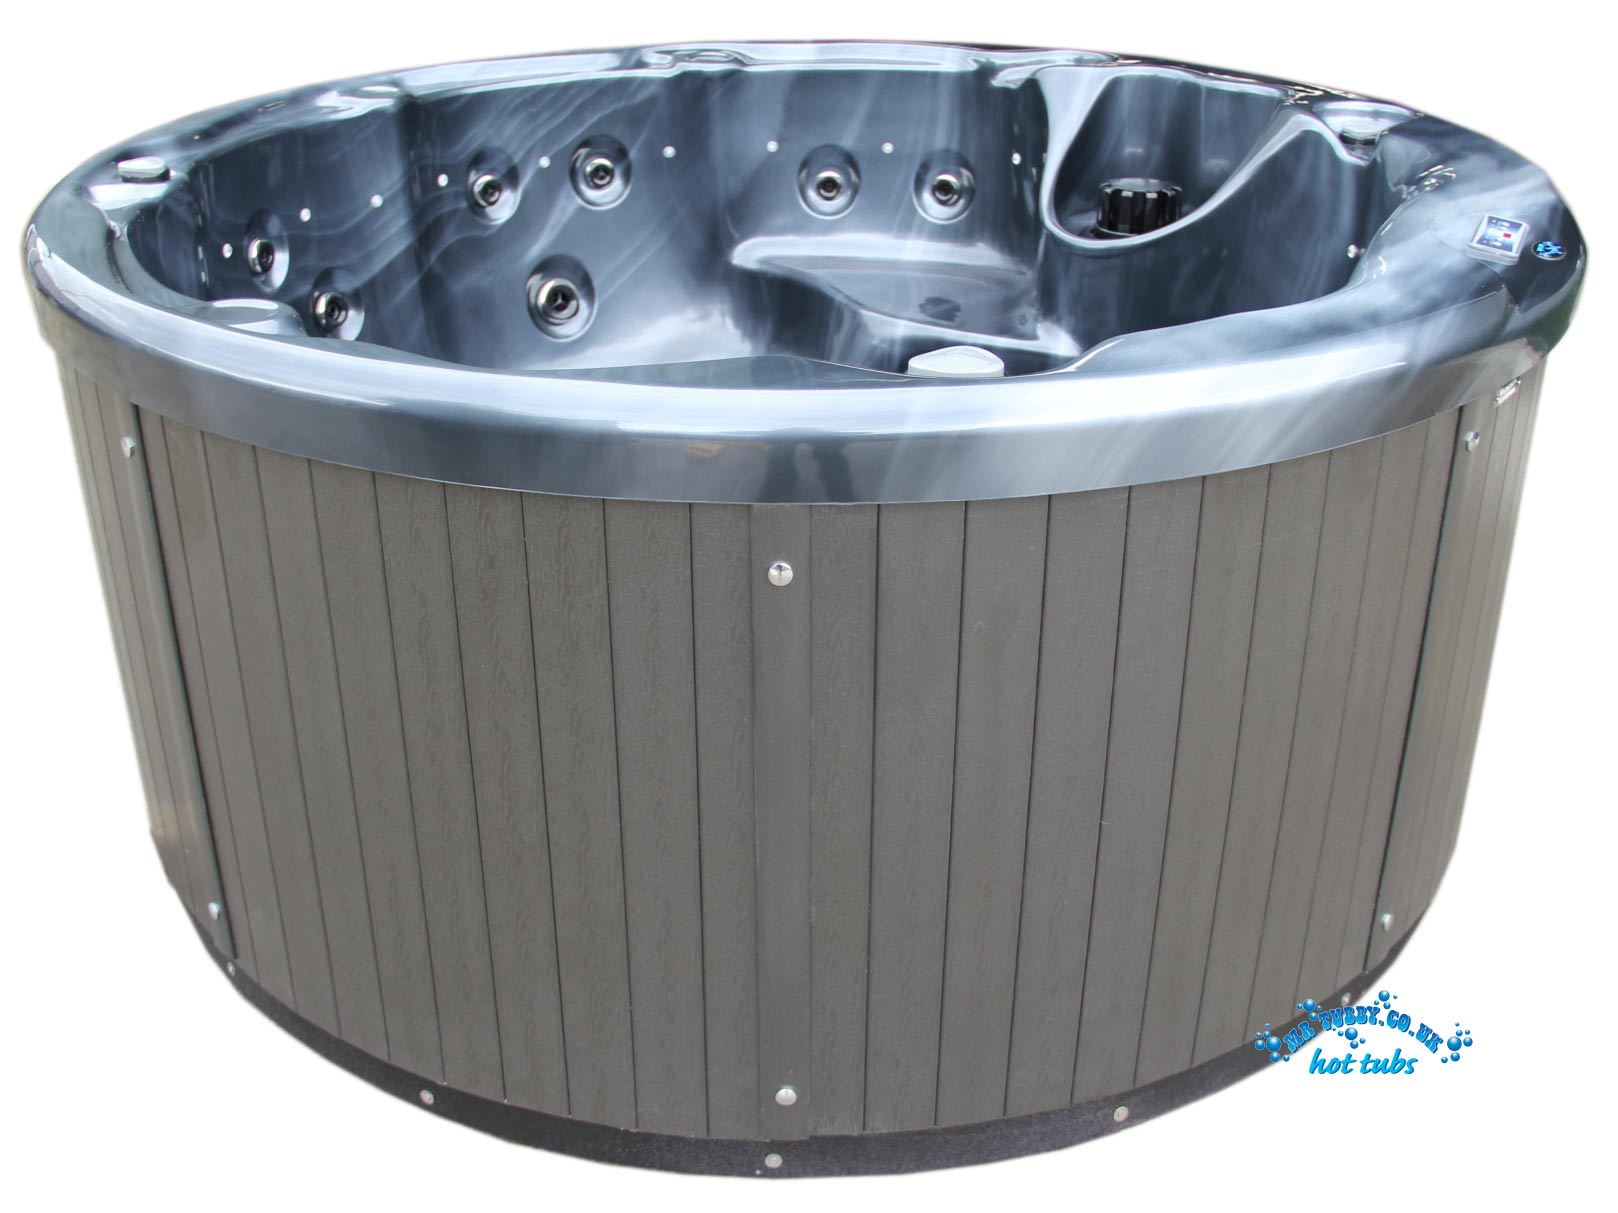 Jupiter Hot Tub Spa Round 20m Diameter Lucite Shell Balboa Cost Of Electrical Wiring For Controls In